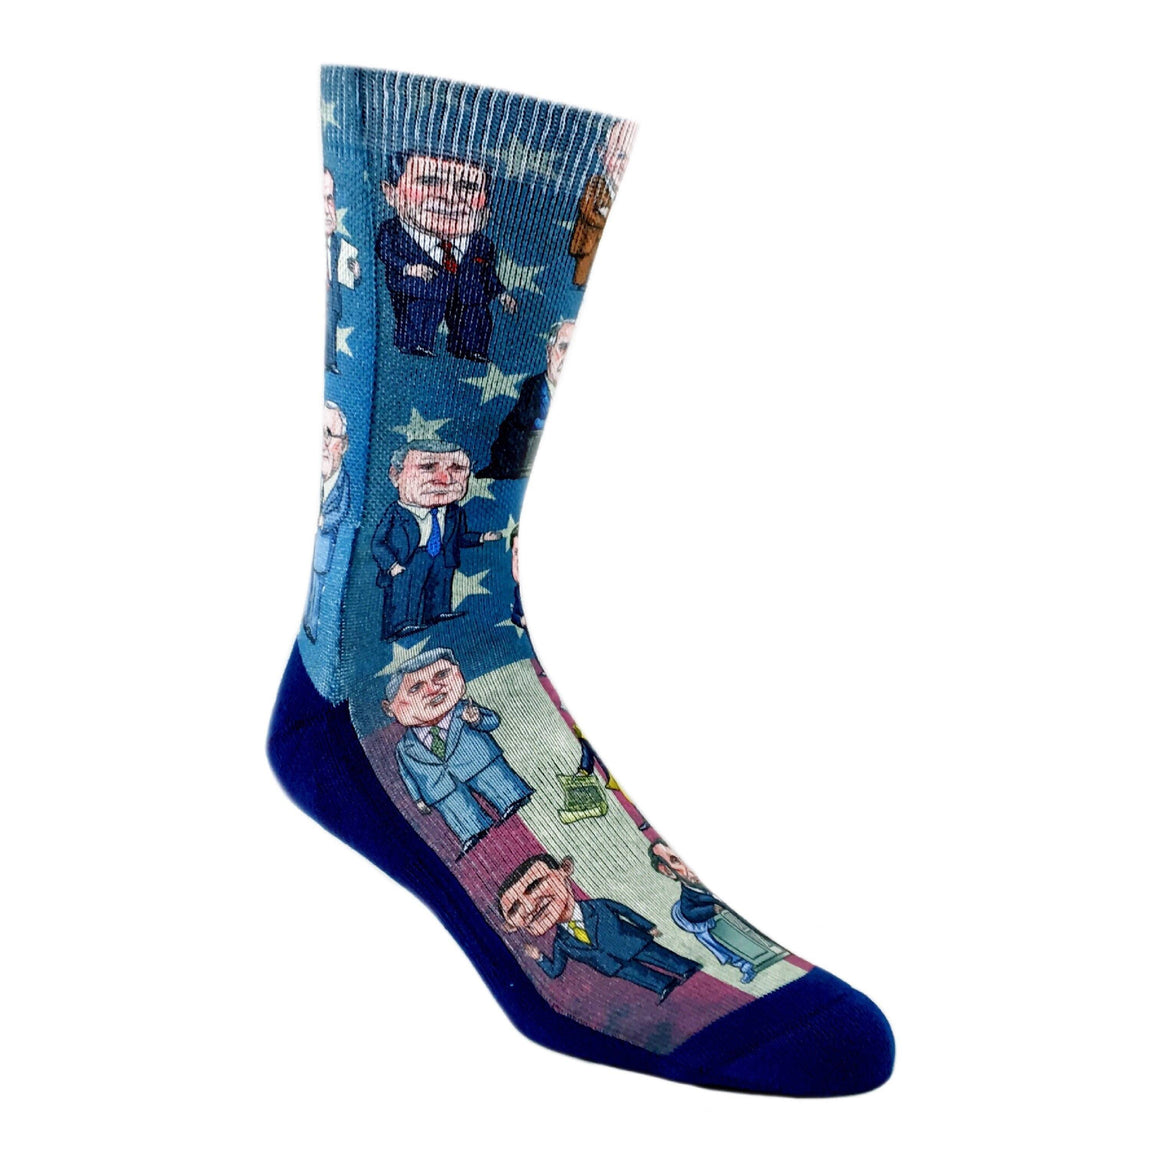 Socks - Past Presidents Of The United States Printed Socks